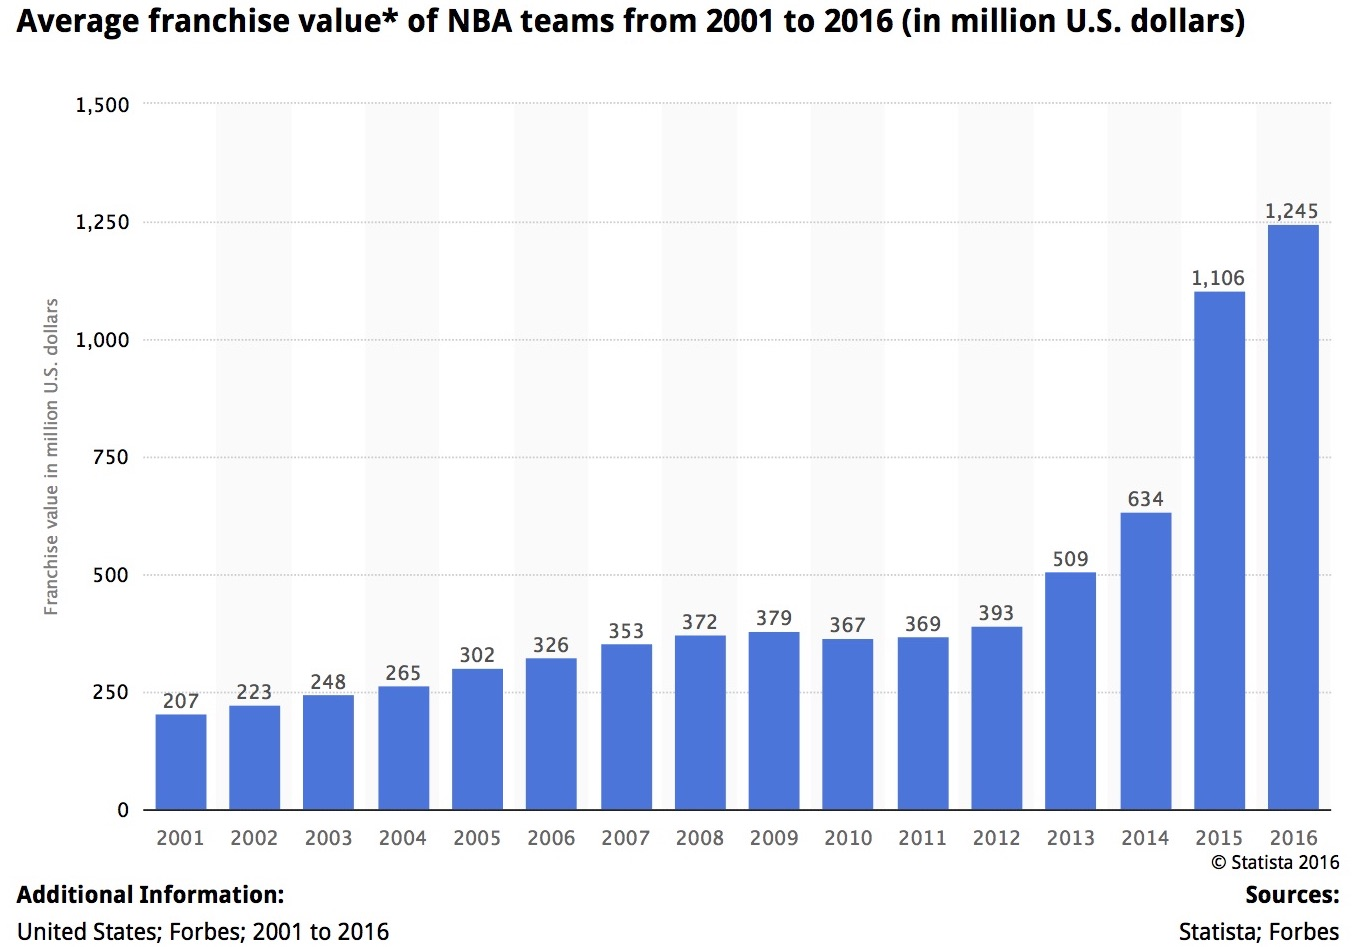 ae%c2%a2-nba-average-franchise-value-2001-2016-statistic